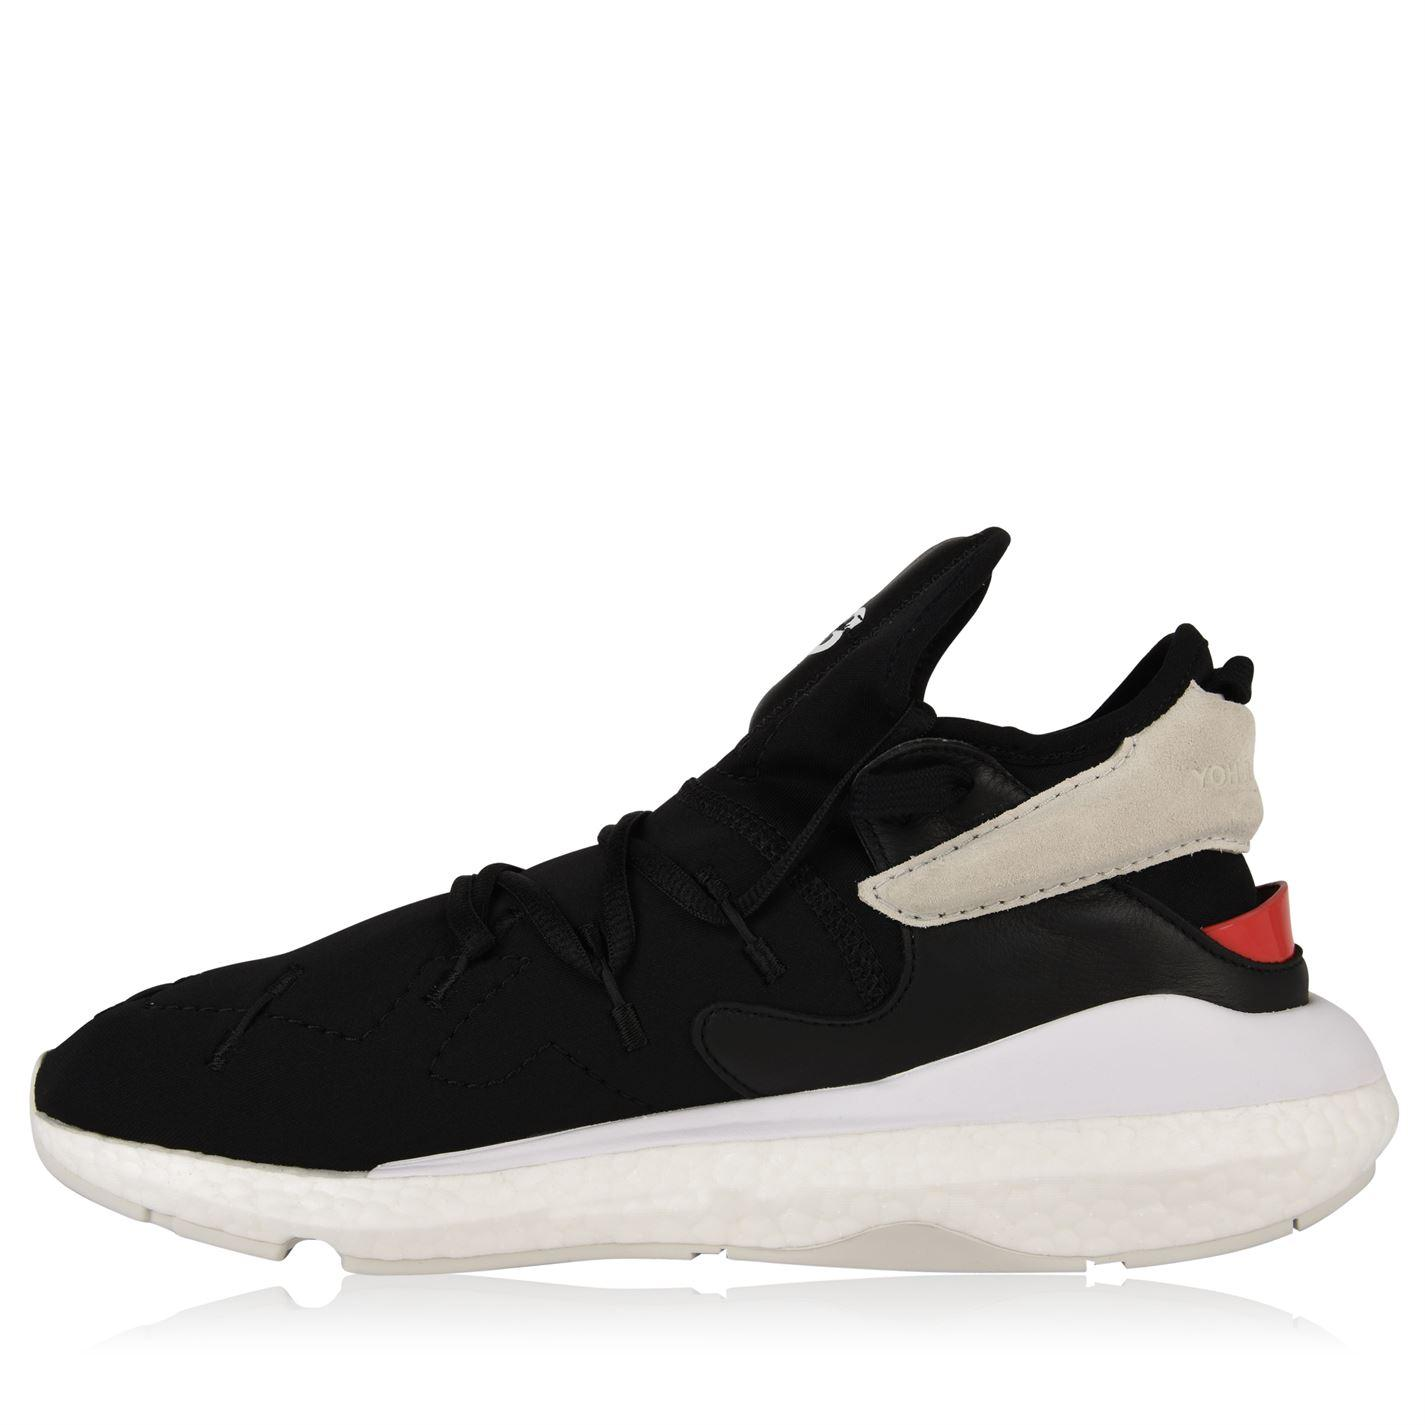 5ce5f863a Lyst - Y-3 Kusari 2 Boost Trainers in Black for Men